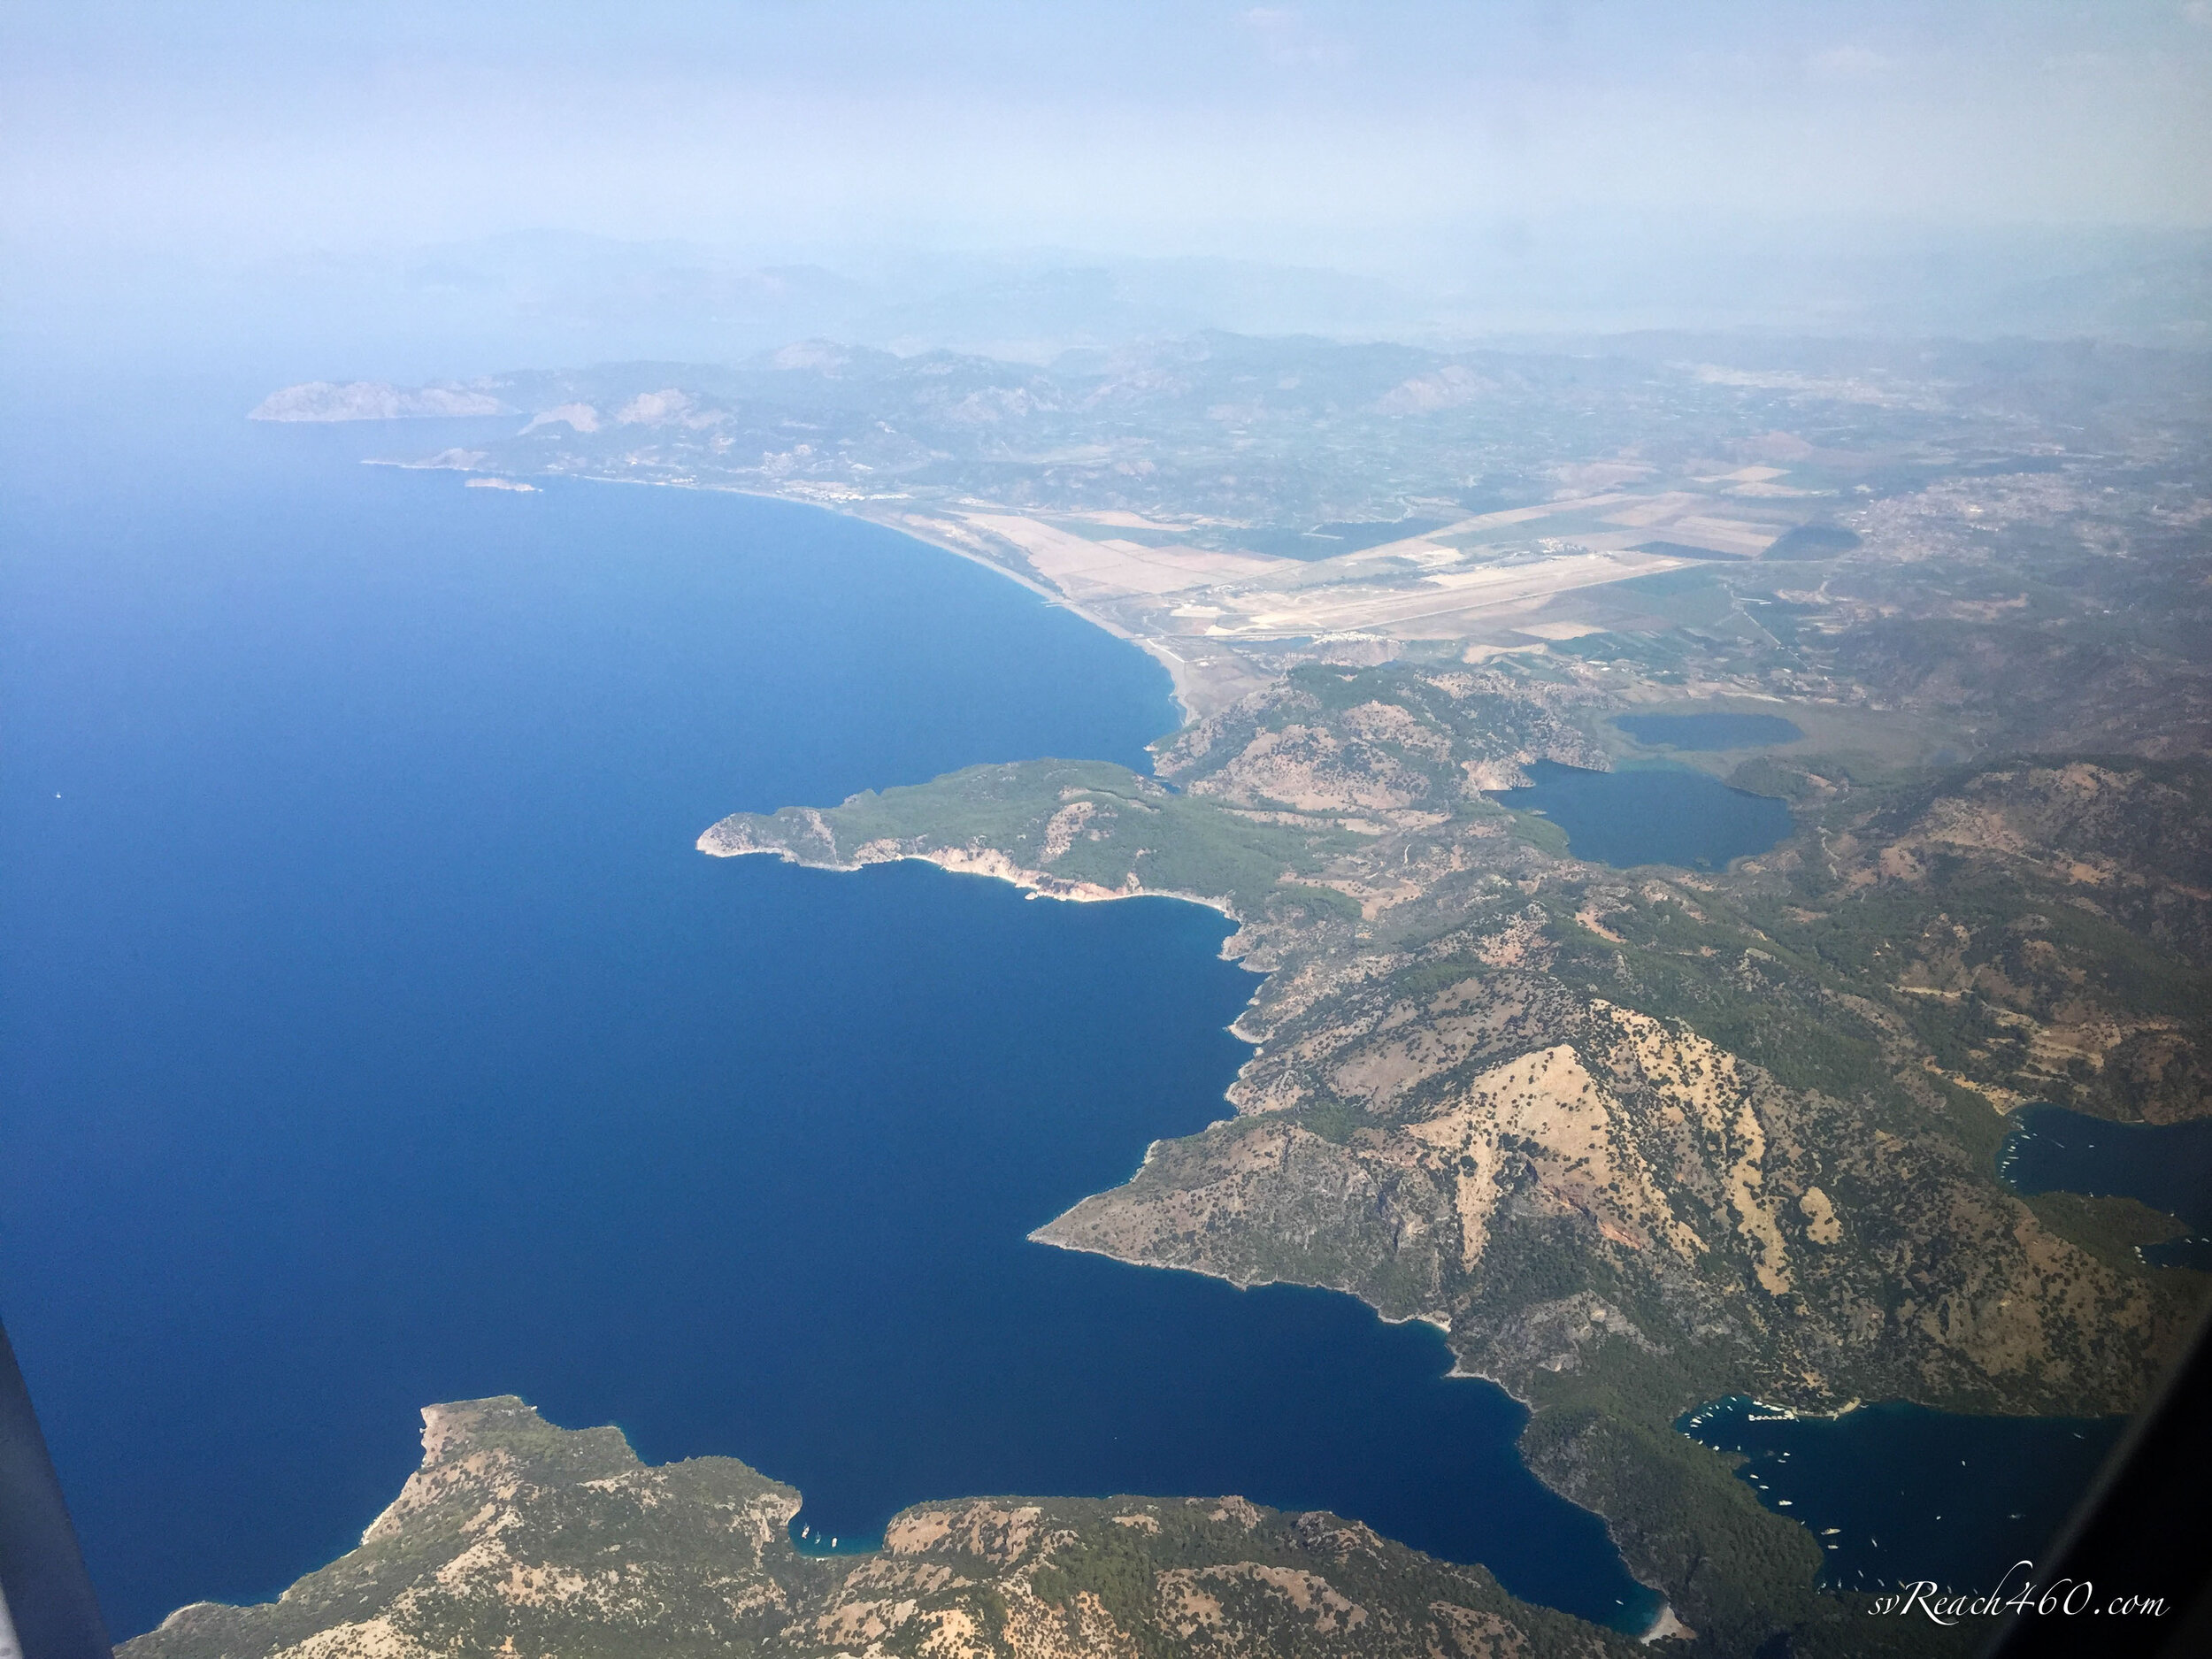 Leaving the Mediterranean coast